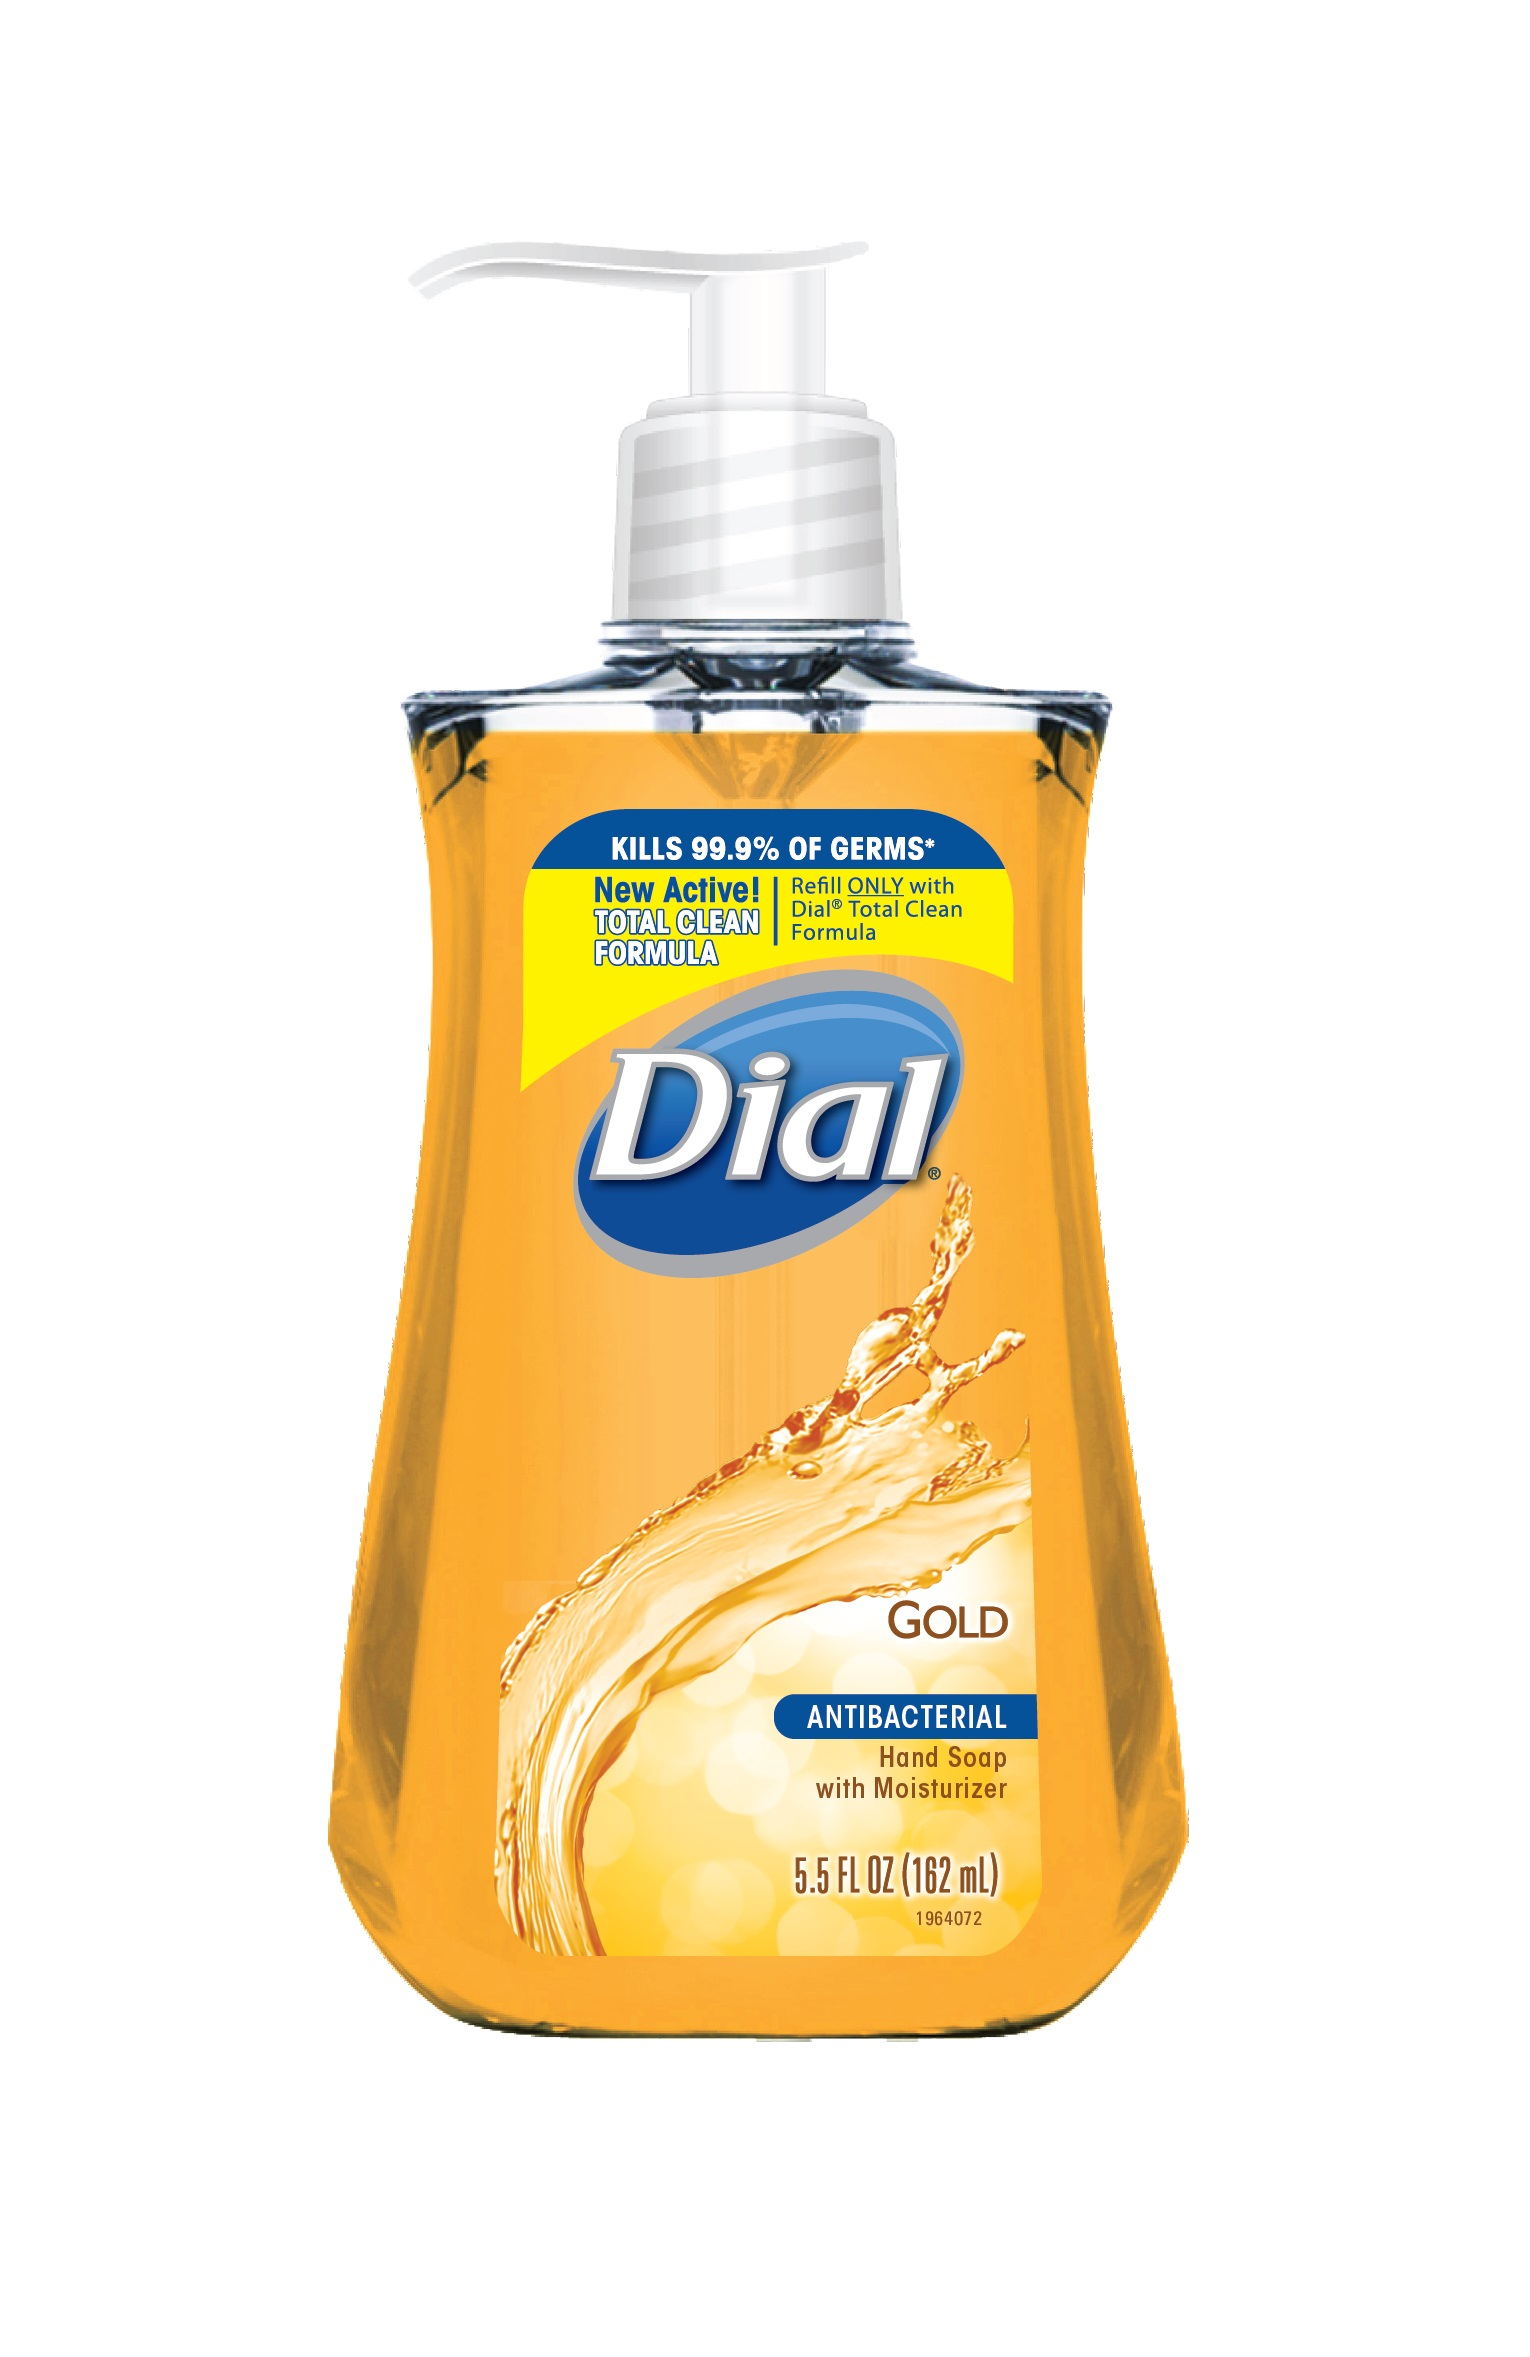 Dailymed Dial Antibacterial Hand Wash Dial Gold